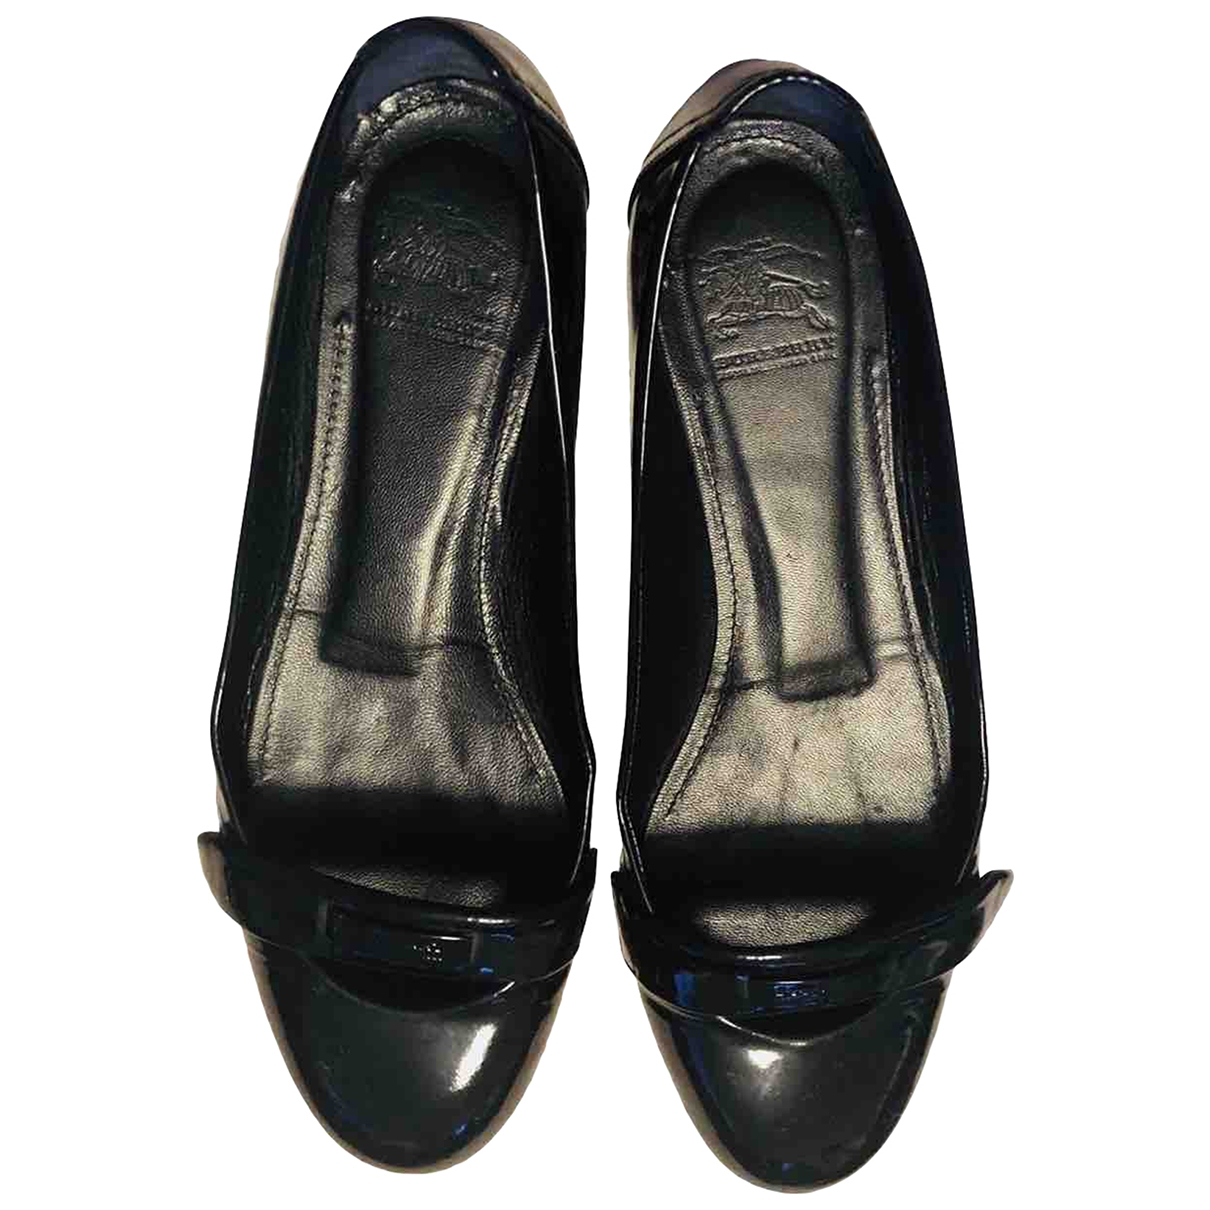 Burberry \N Ballerinas in  Schwarz Lackleder